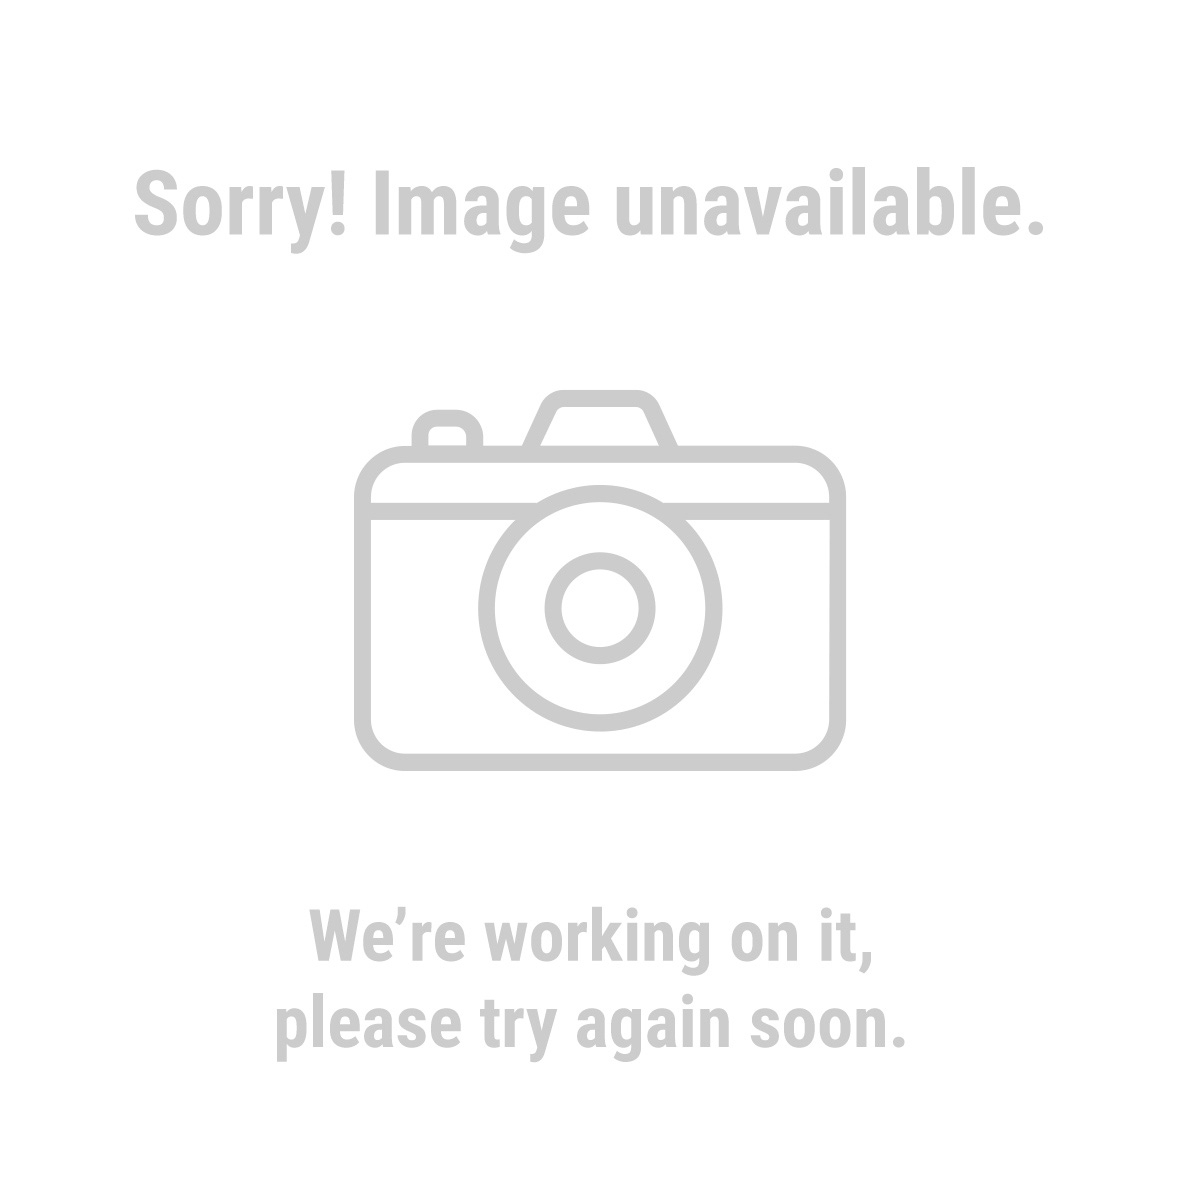 Bunker Hill Security 93068 Wireless Driveway Alert System